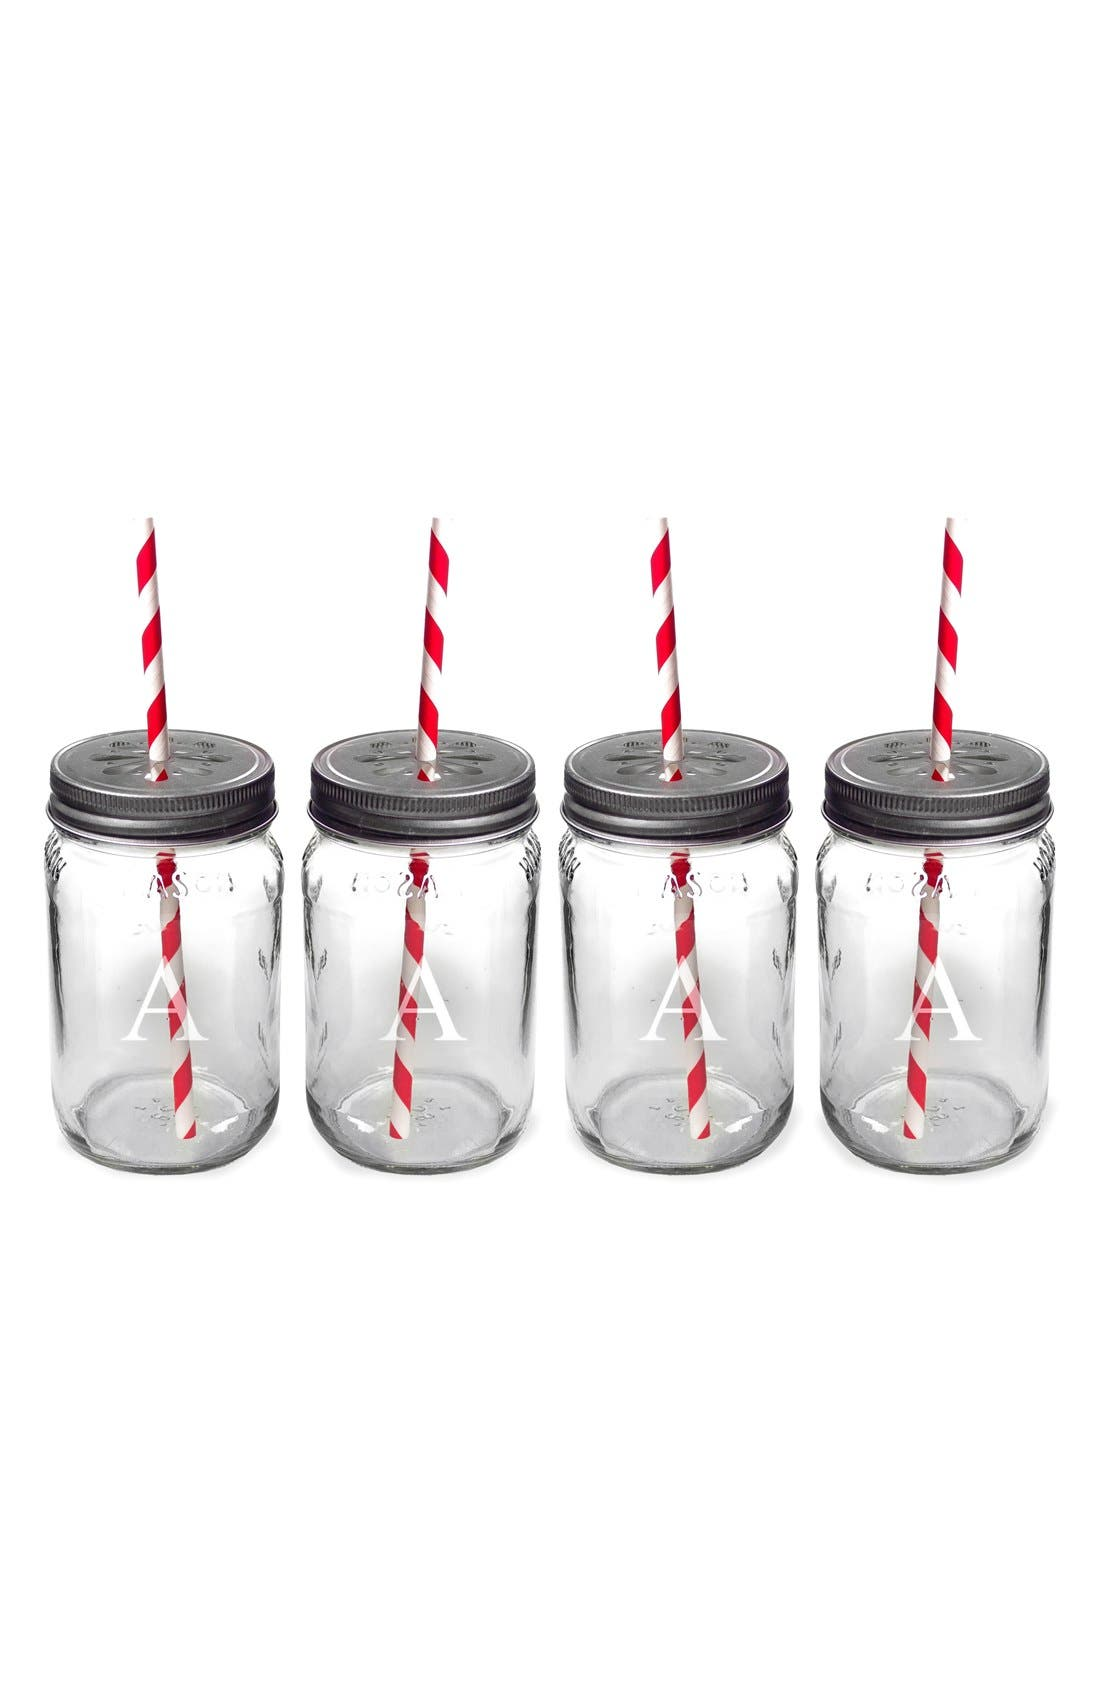 Cathy's Concepts Monogram Drinking Mason Jar Mugs (Set of 4)